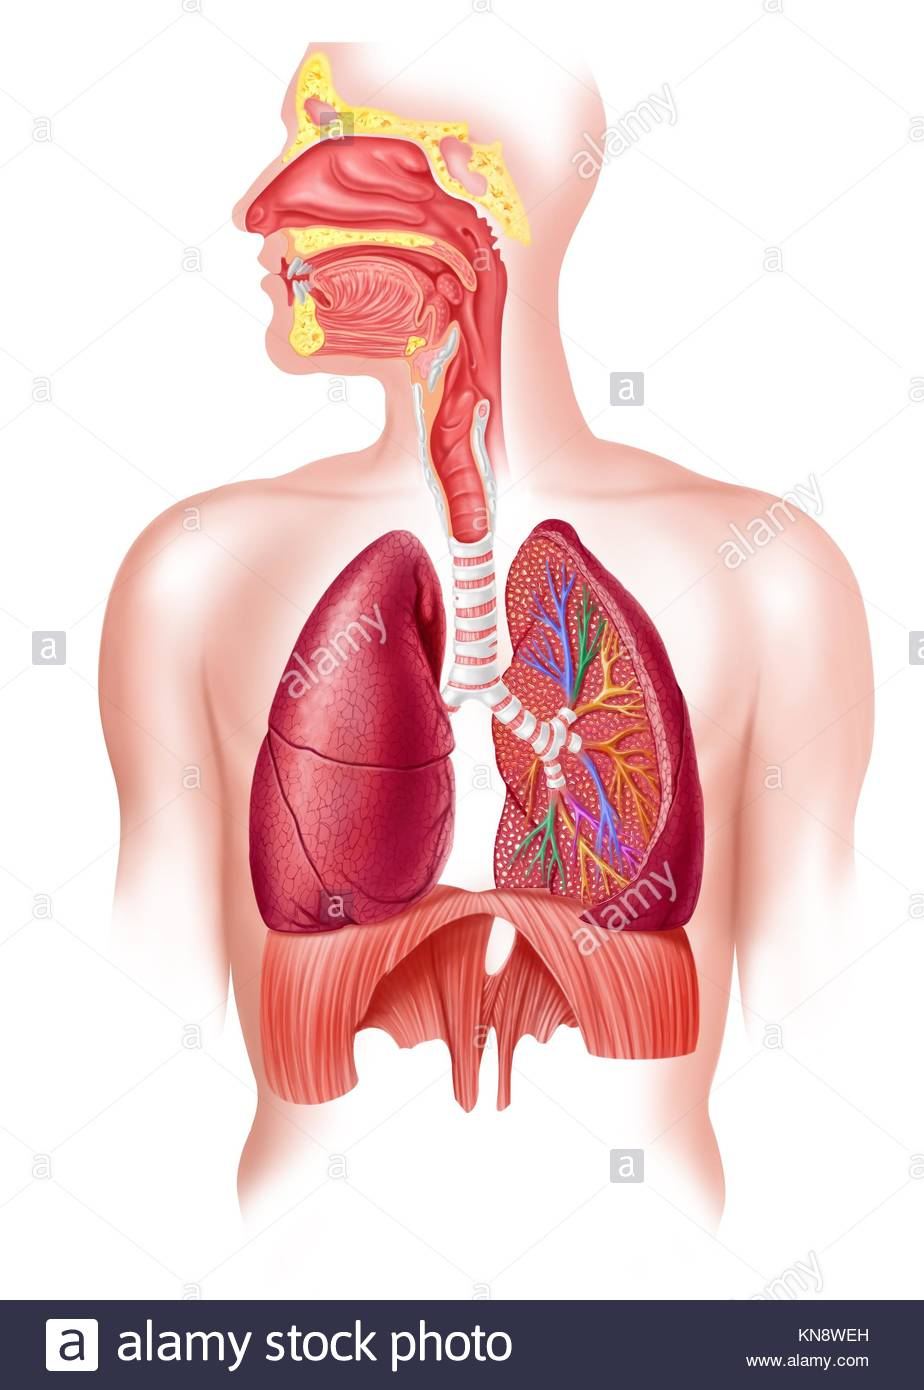 medium resolution of cutaway diagram of a human respiratory sustem also the nasal and mouth parts 2 d digital illustration on white background with clipping path